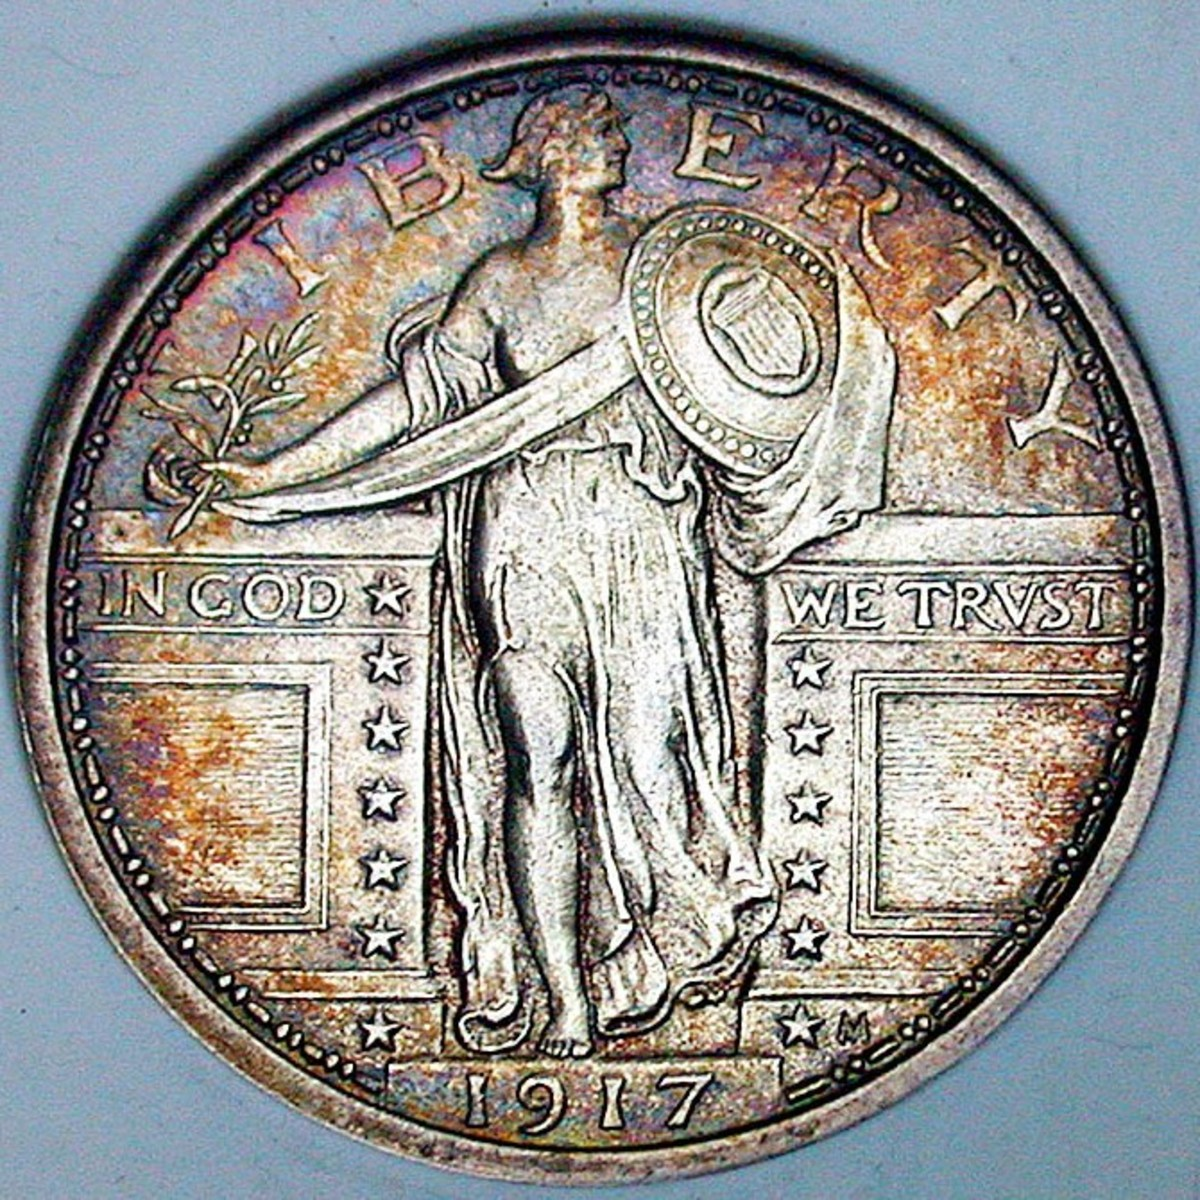 1917 Standing Liberty Quarter Obverse. Variety 1 w/exposed breast. Photo Courtesy: coinpage.com